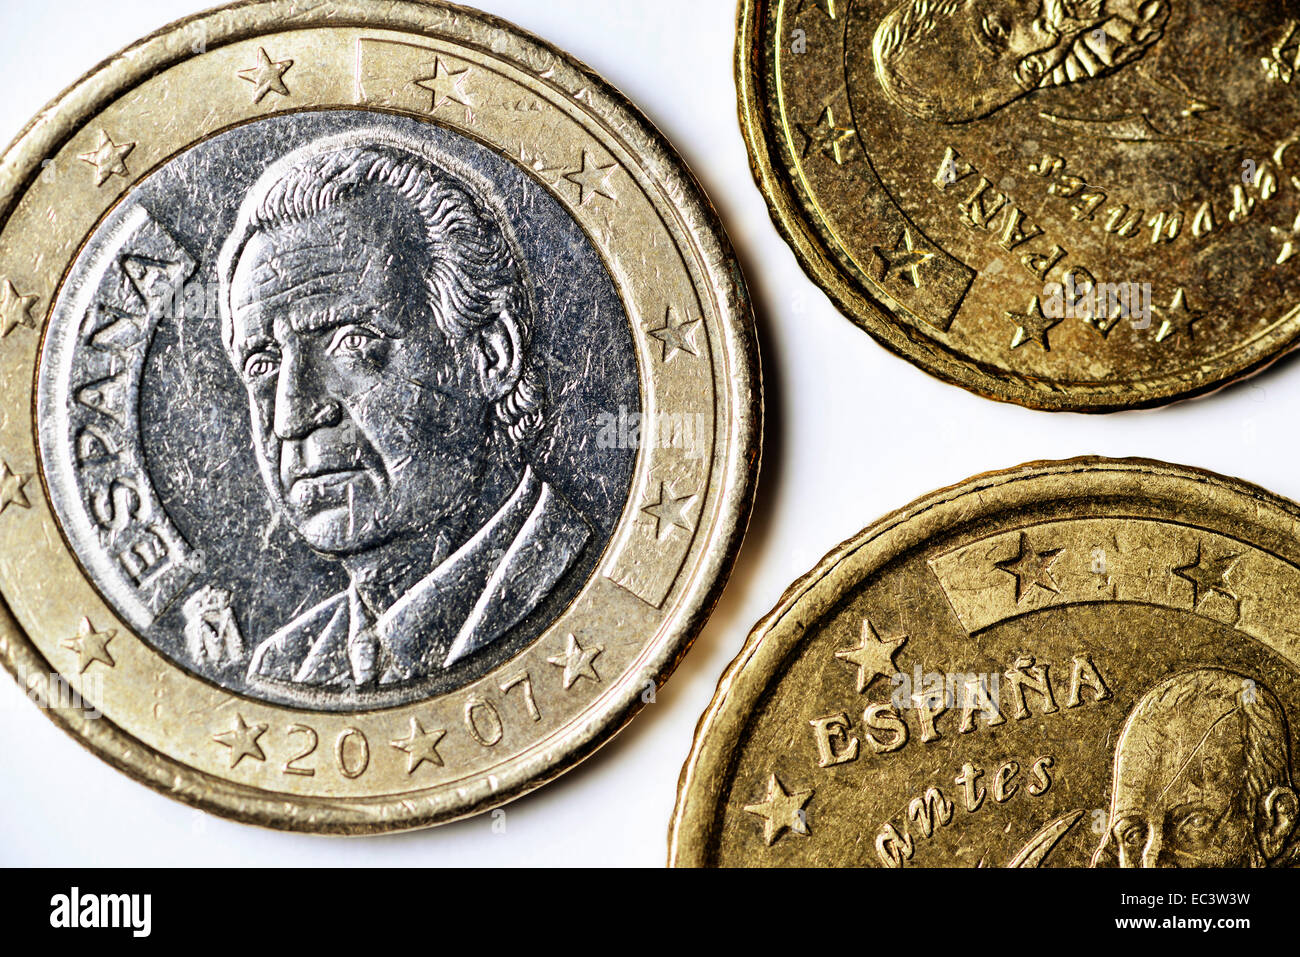 Spanish euro coins, debt crisis in Spain - Stock Image